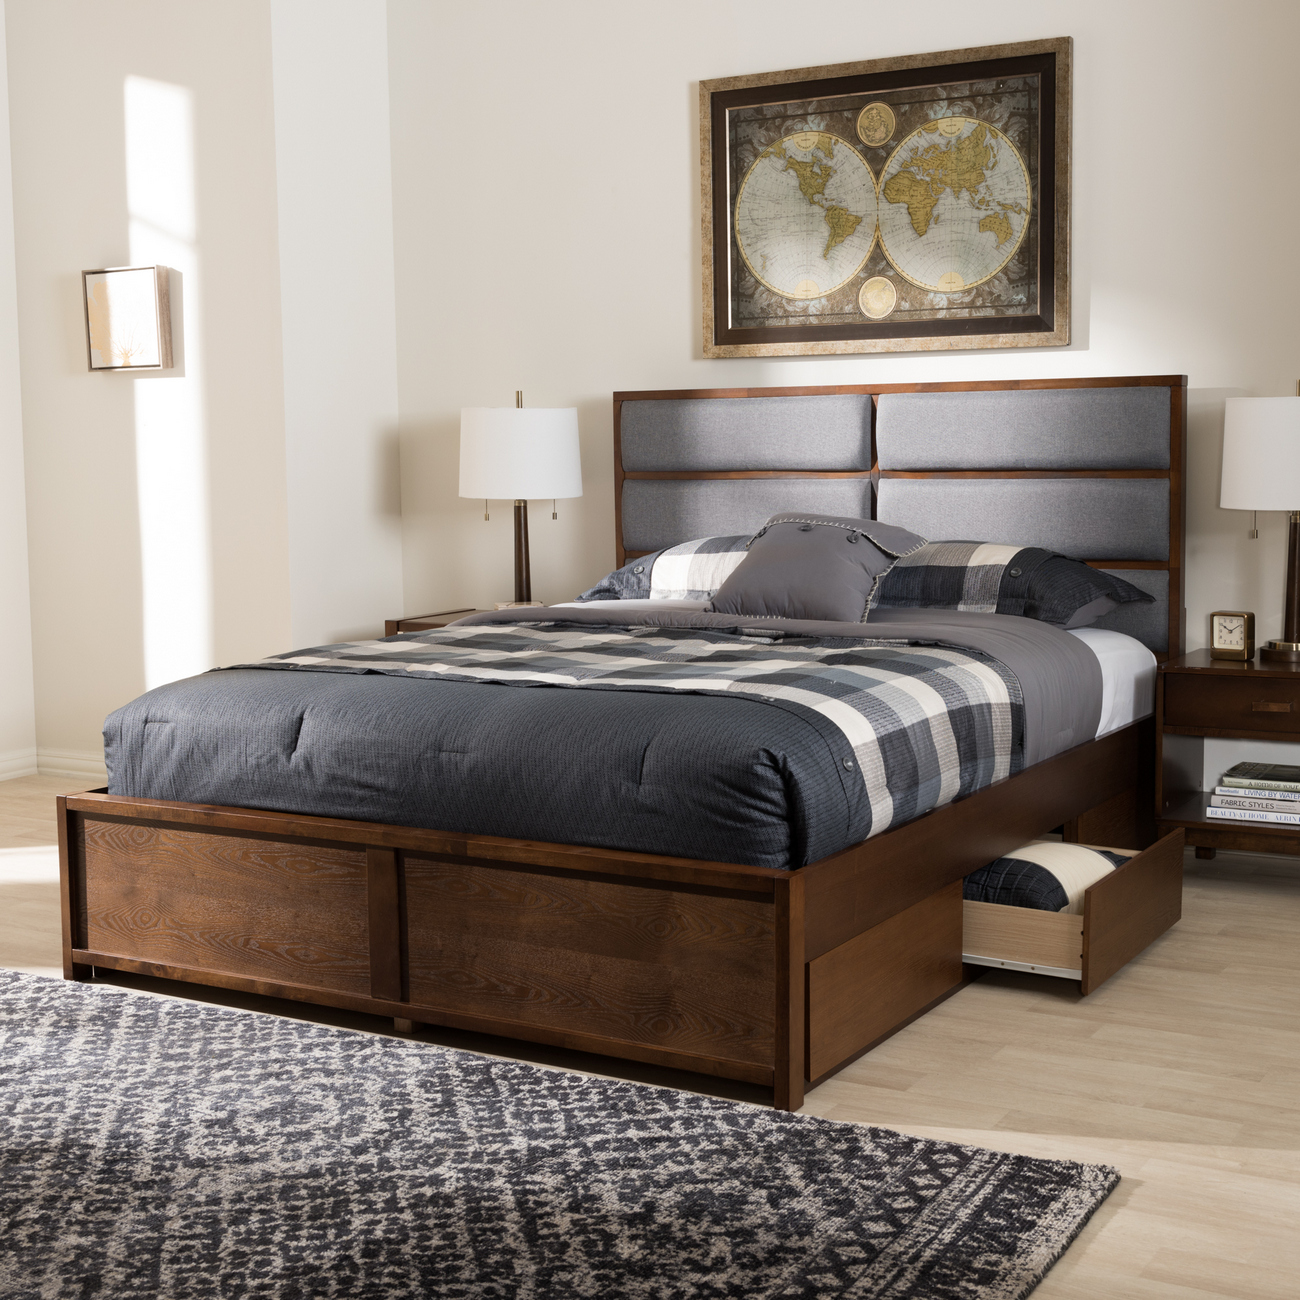 Dark Fabric Upholstered Walnut King Storage Platform Bed